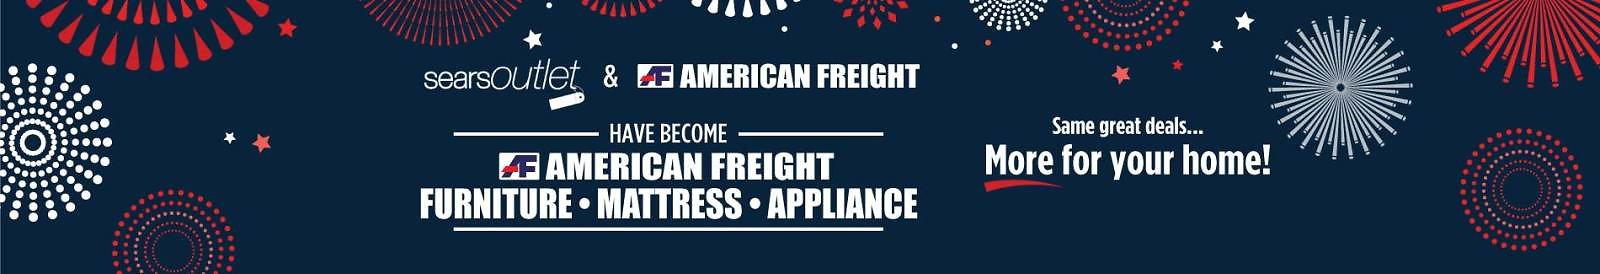 Sears Outlet and American Freight Have Become: American Freight: Furniture, Mattress, and Appliance